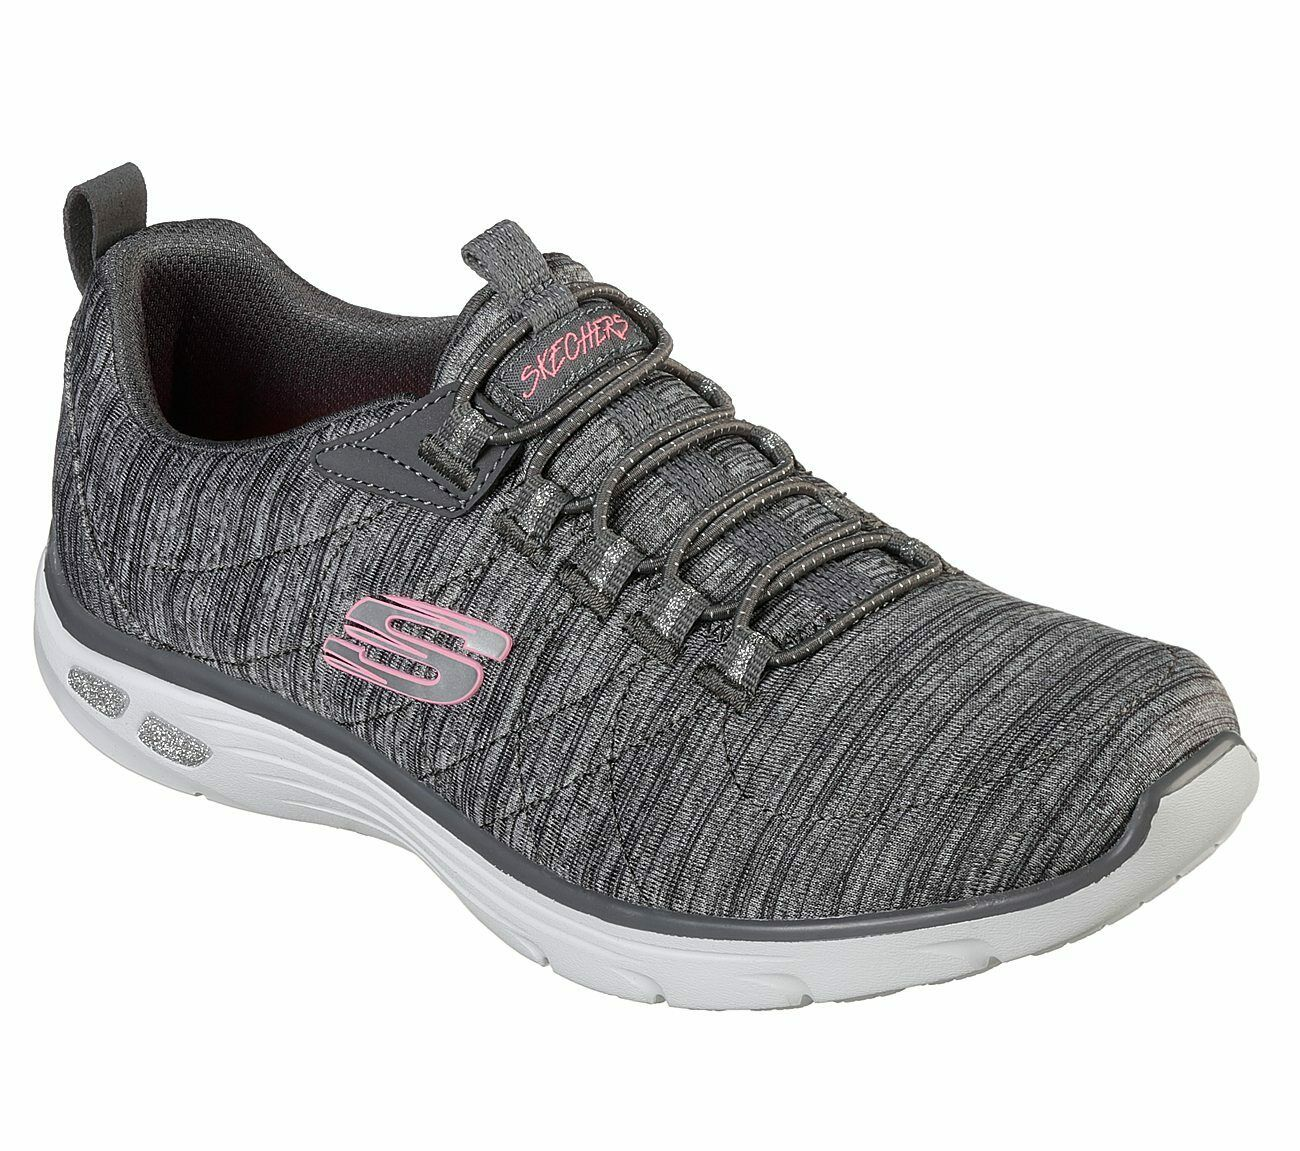 Skechers Comfortable Fit  Empire d' Lux Womens Sneakers Sporty Striped